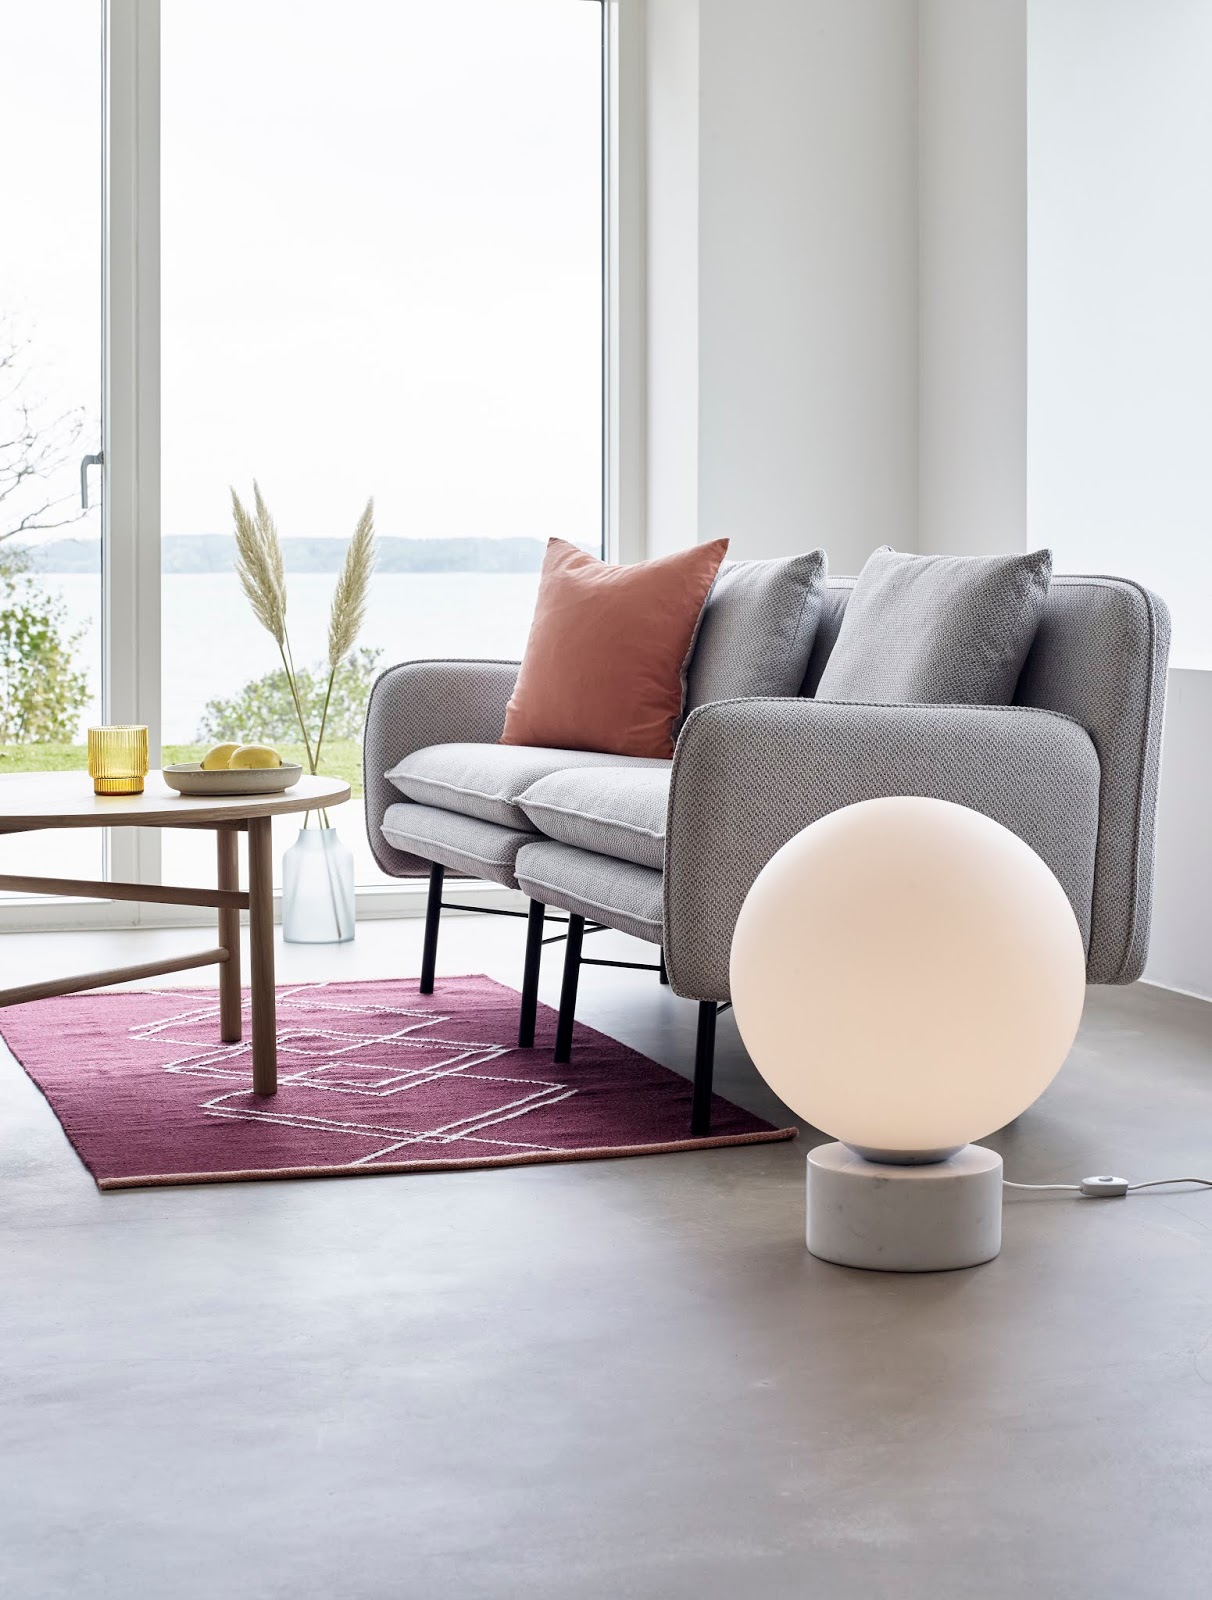 What to consider when buying a sofa?